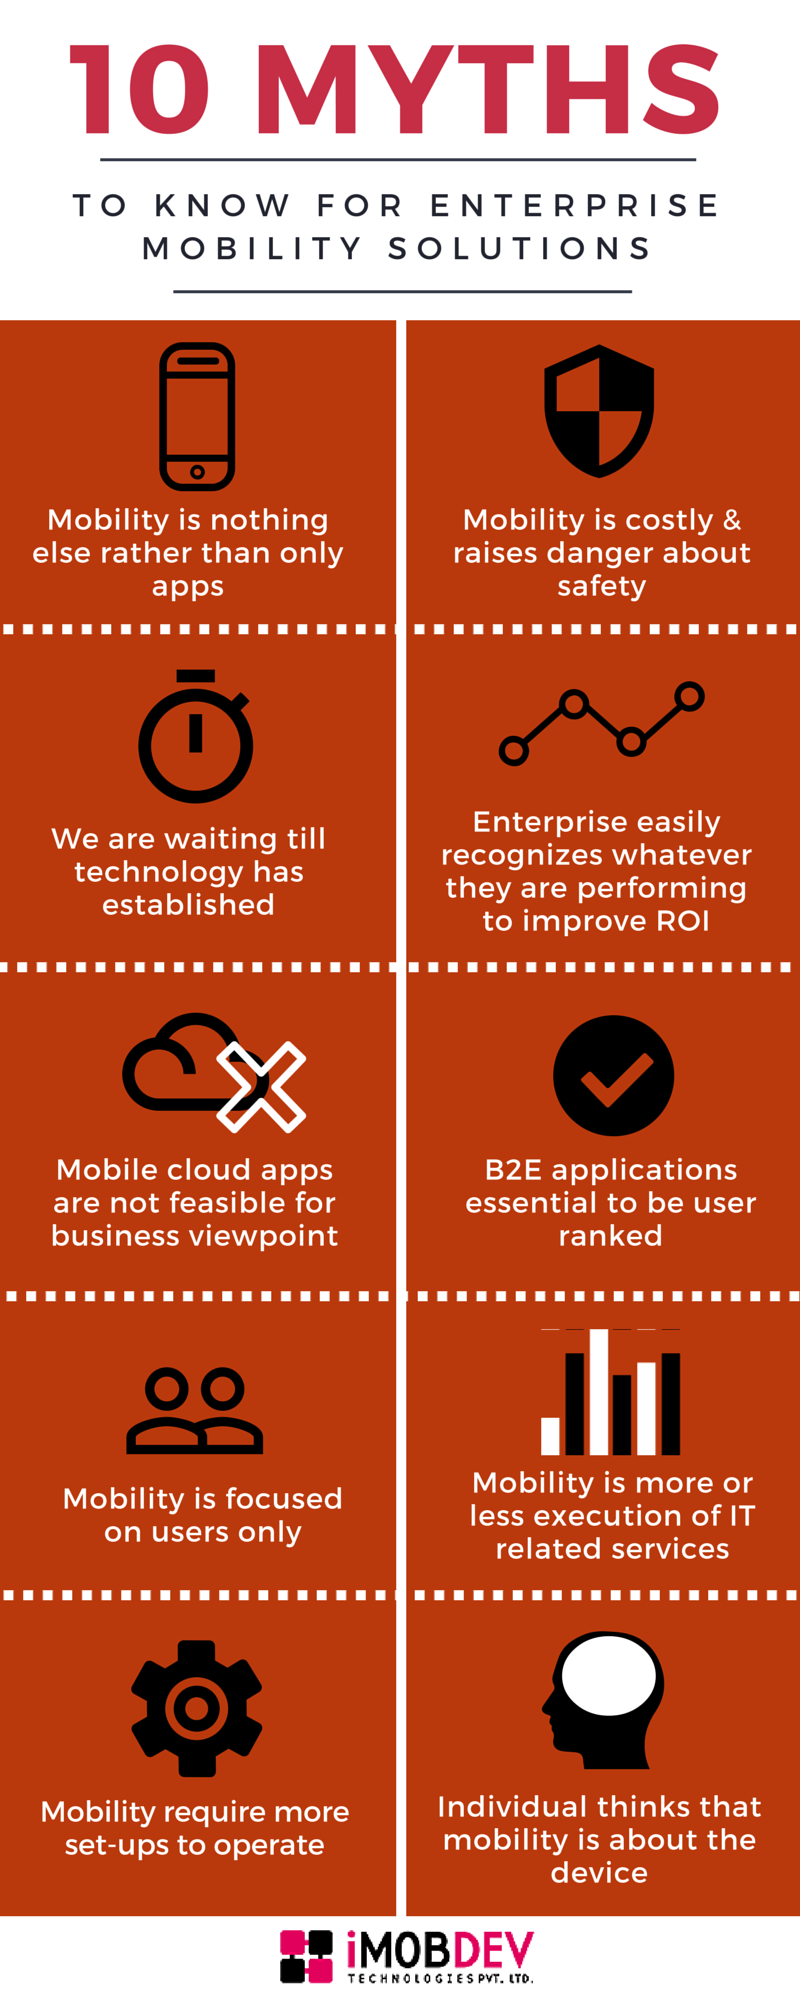 10 Myths To Know For enterprise mobility solutions - Image 1